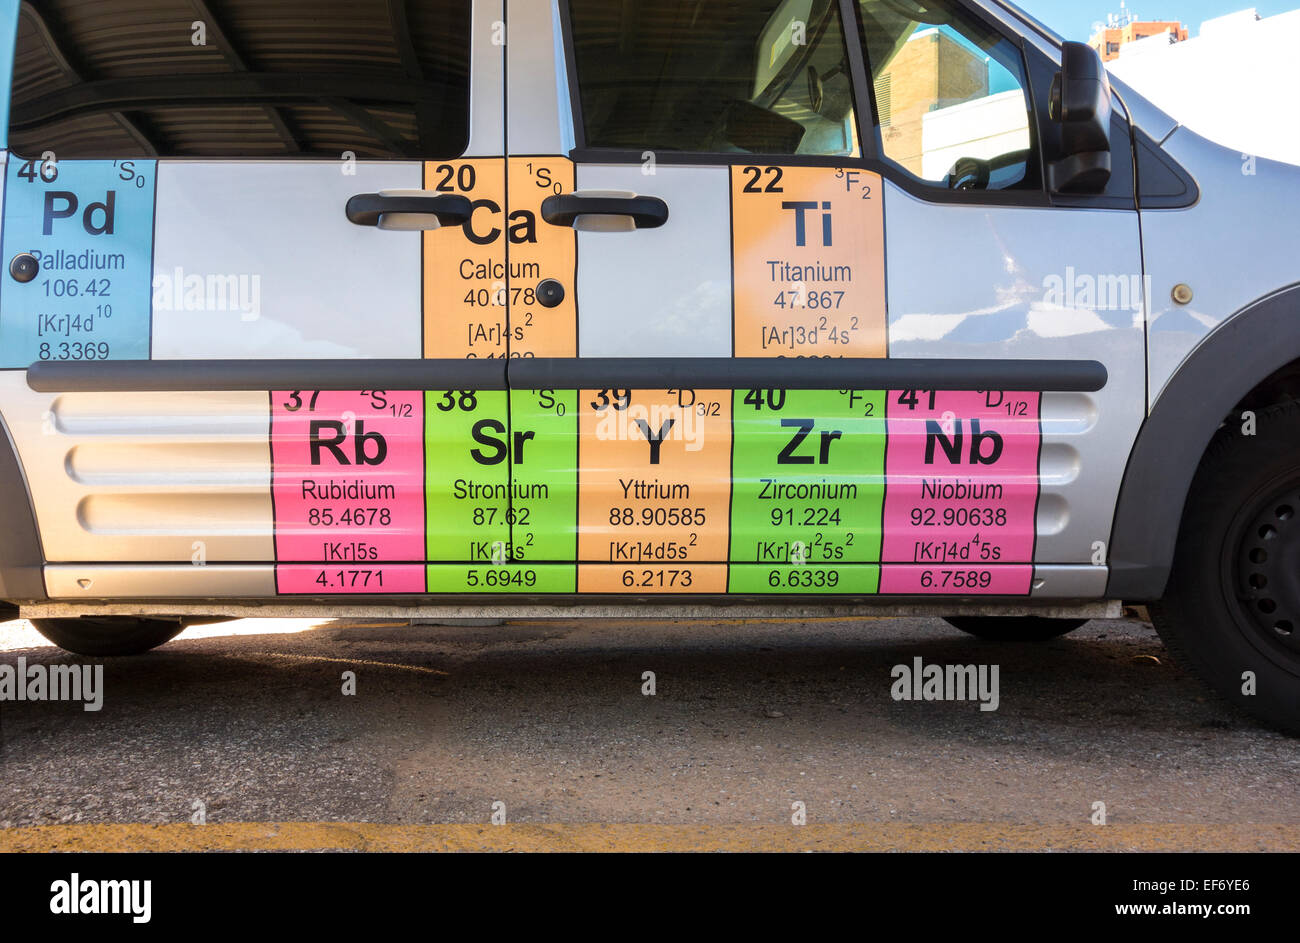 Mendeleev's Periodic Table of the Elements on the side of a car of the Maryland Science Center in Baltimore - Stock Image